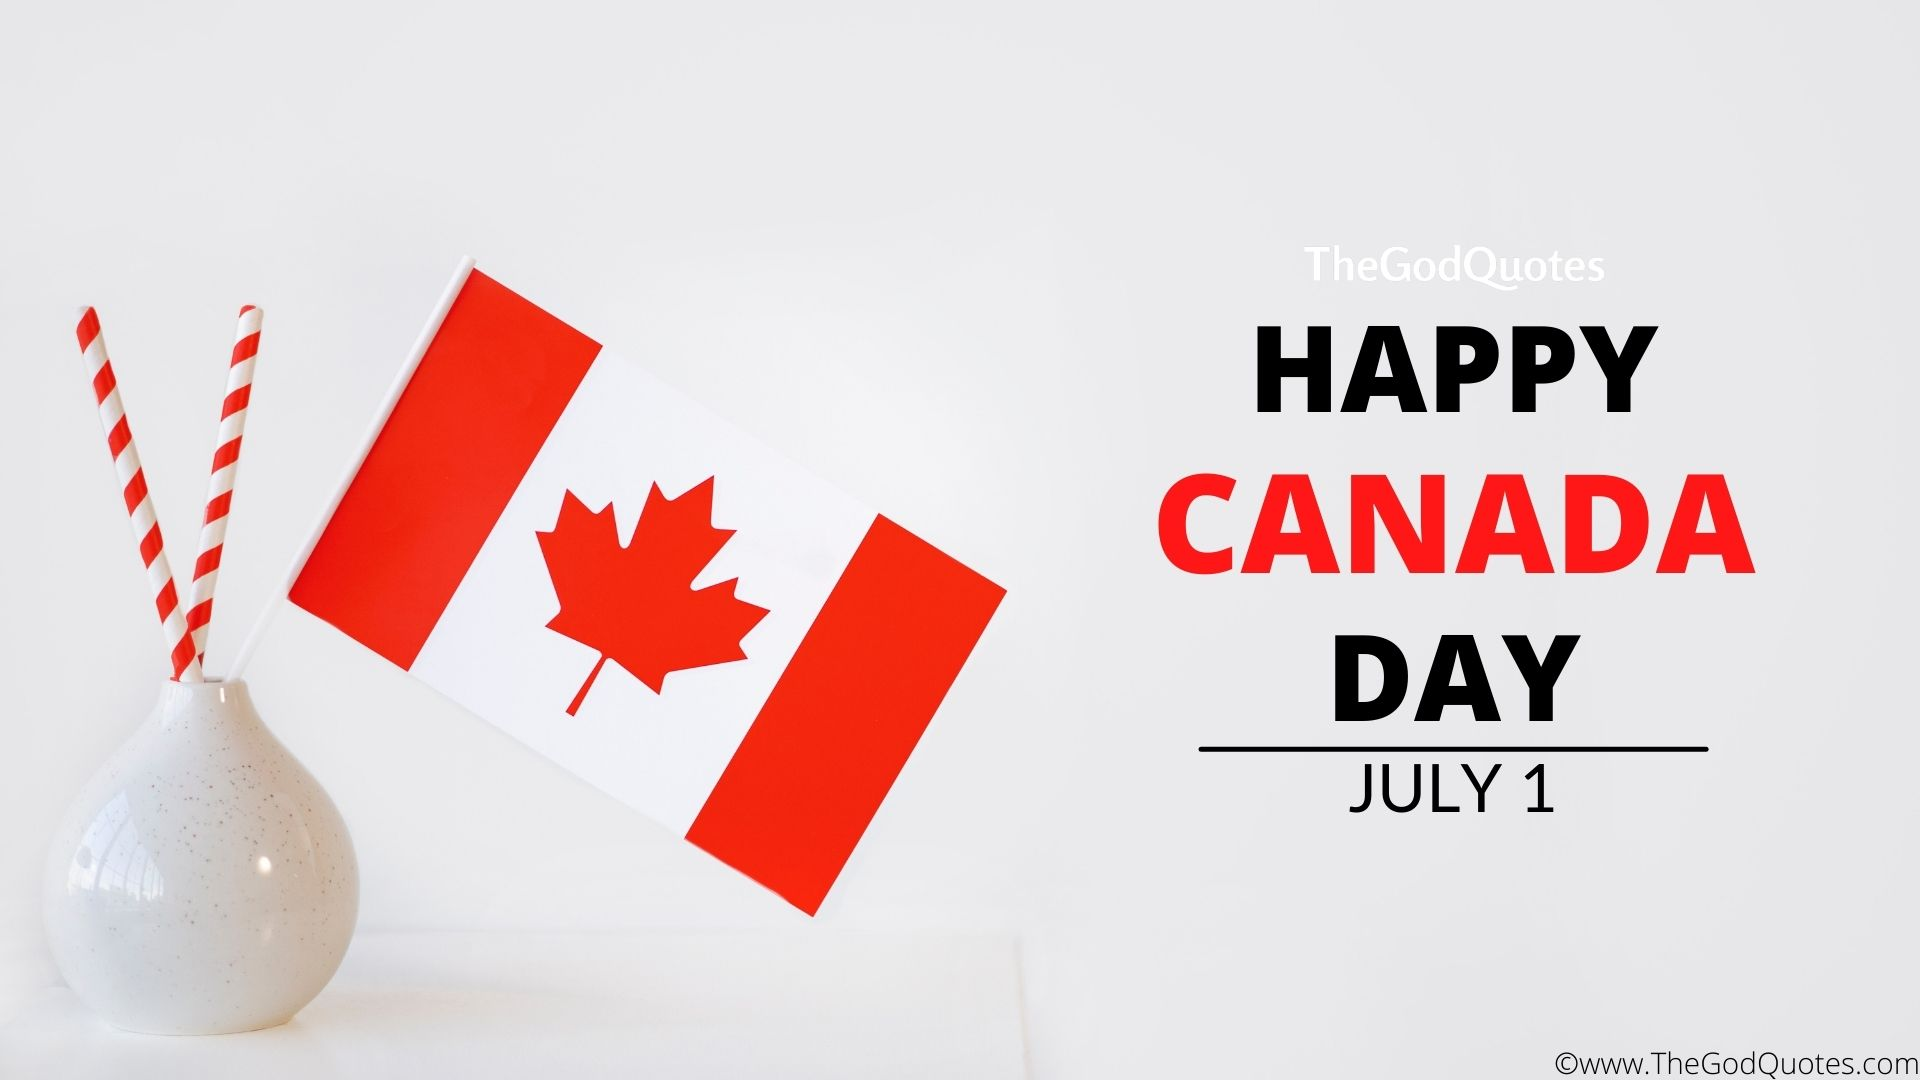 Happy Canada Day Images, Pictures, Photos, Poster, Wallpaper